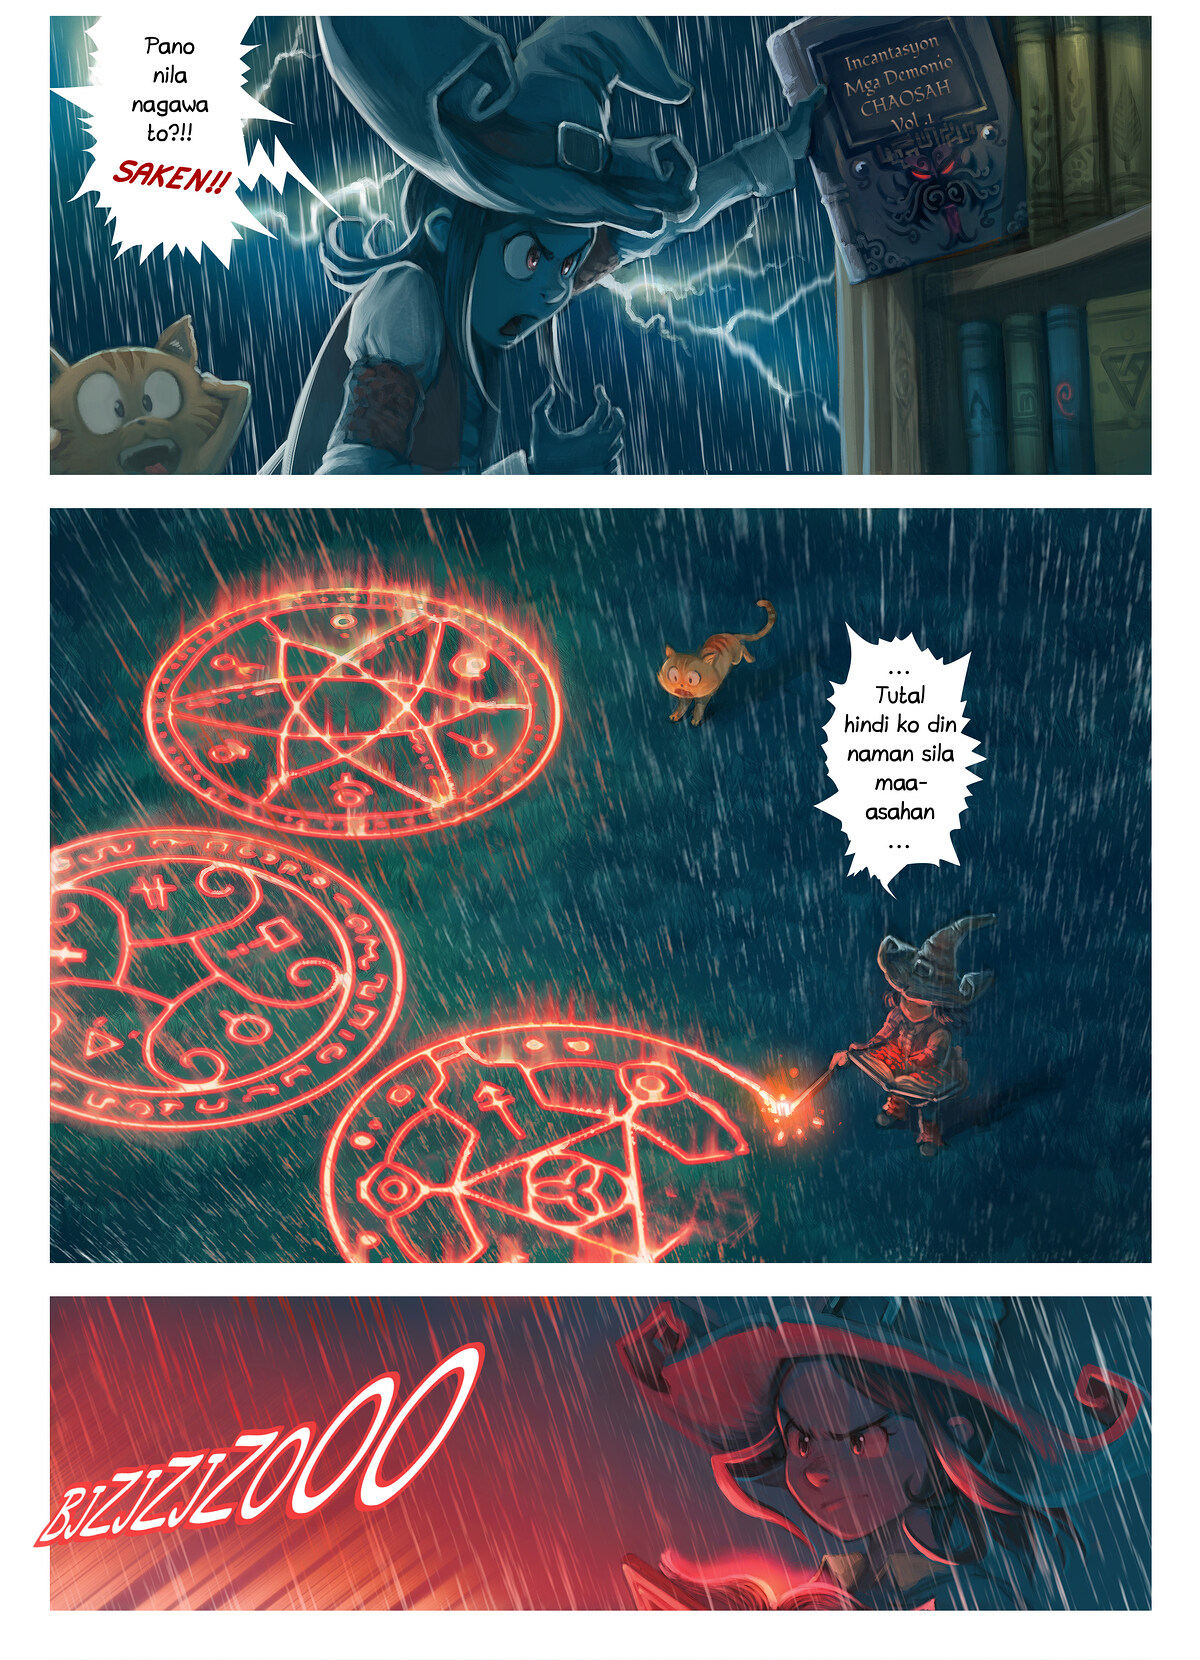 A webcomic page of Pepper&Carrot, episode 8 [ph], page 5